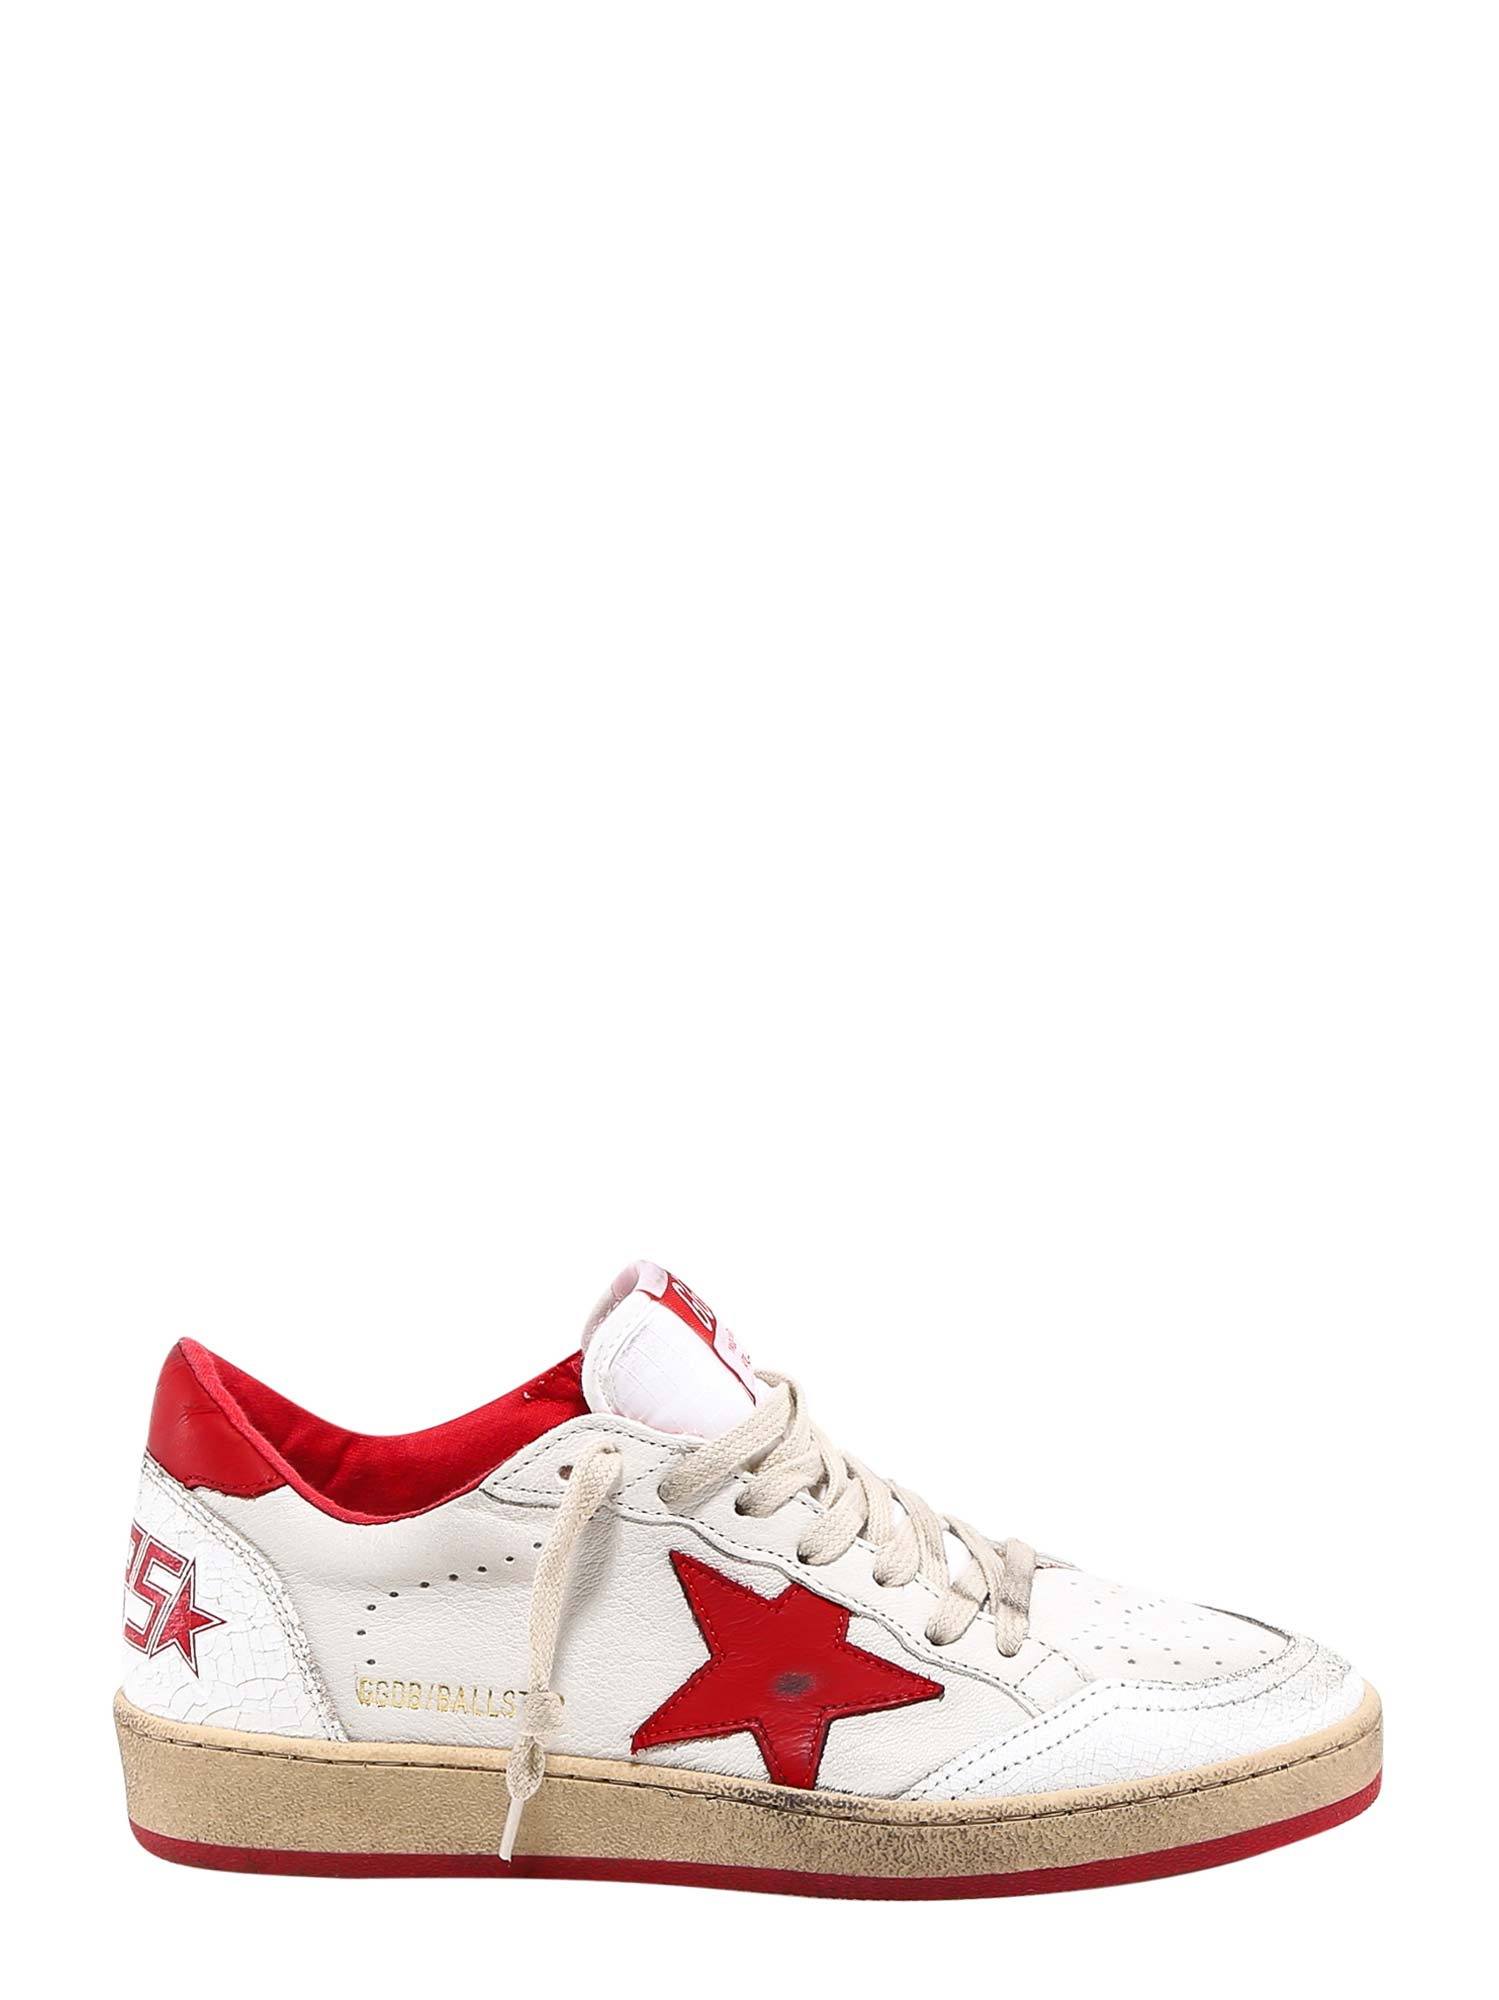 Buy Golden Goose Ball Star Sneakers online, shop Golden Goose shoes with free shipping